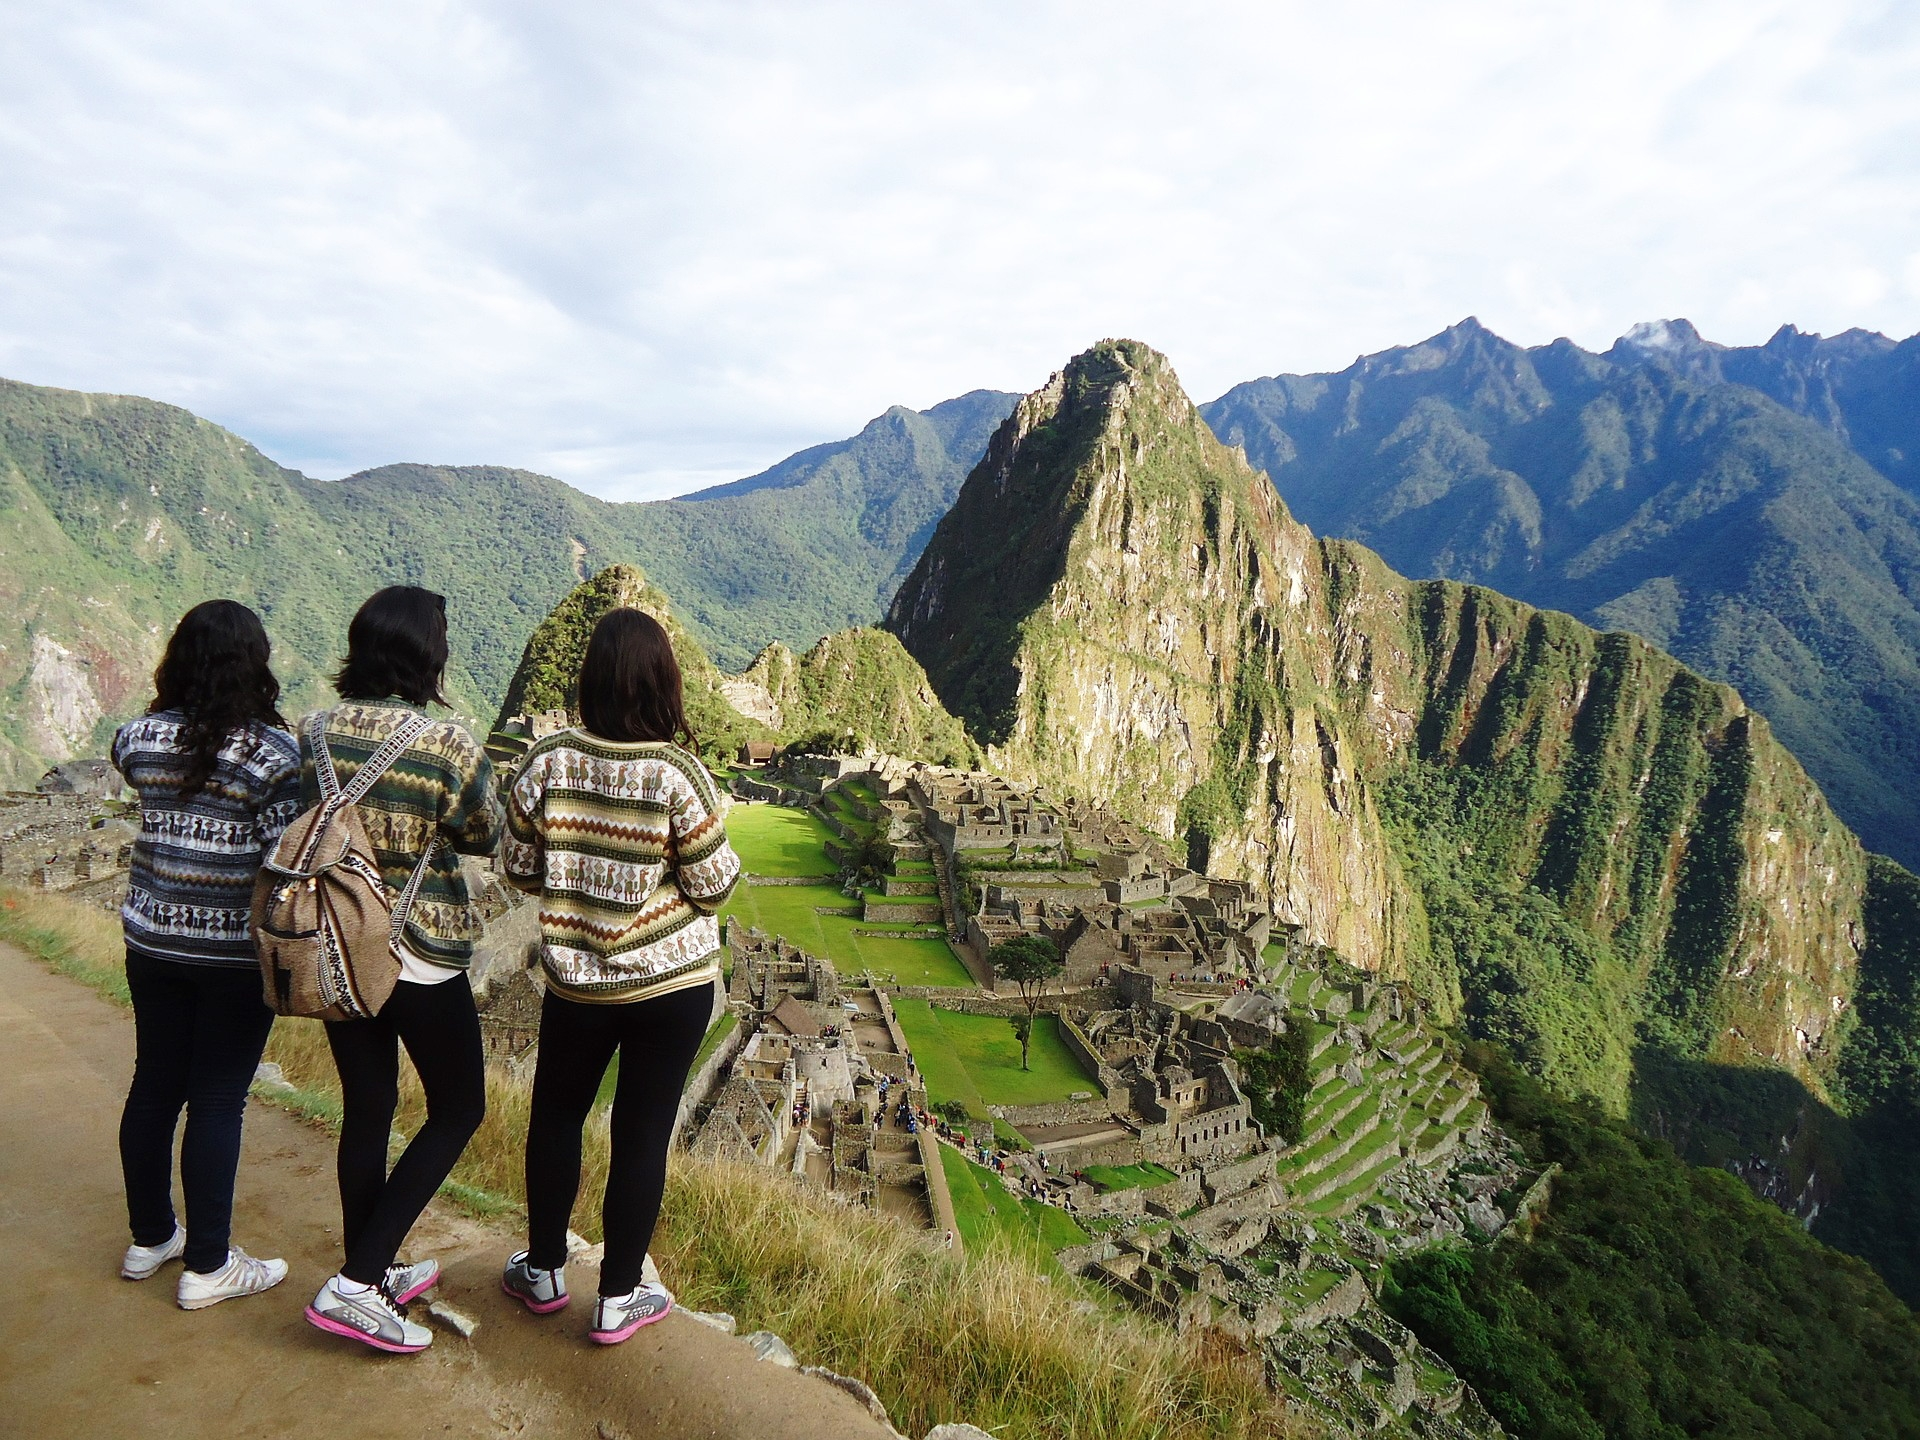 Family summer holiday to Machu Picchu